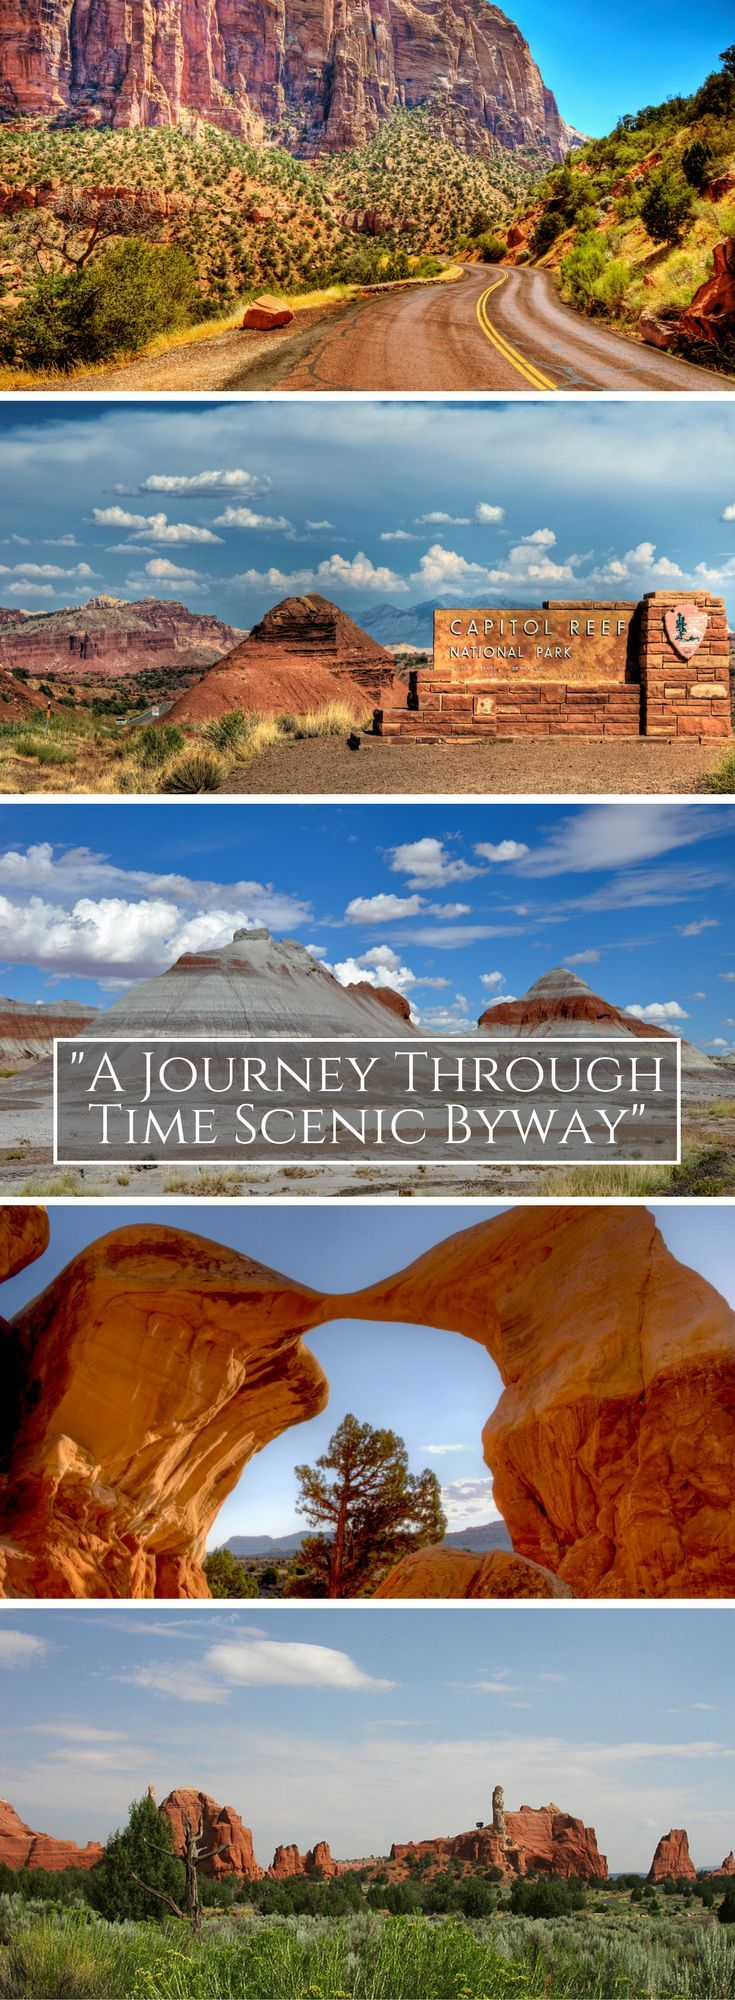 """Highway 12 is called """"A Journey Through Time Scenic Byway"""" 